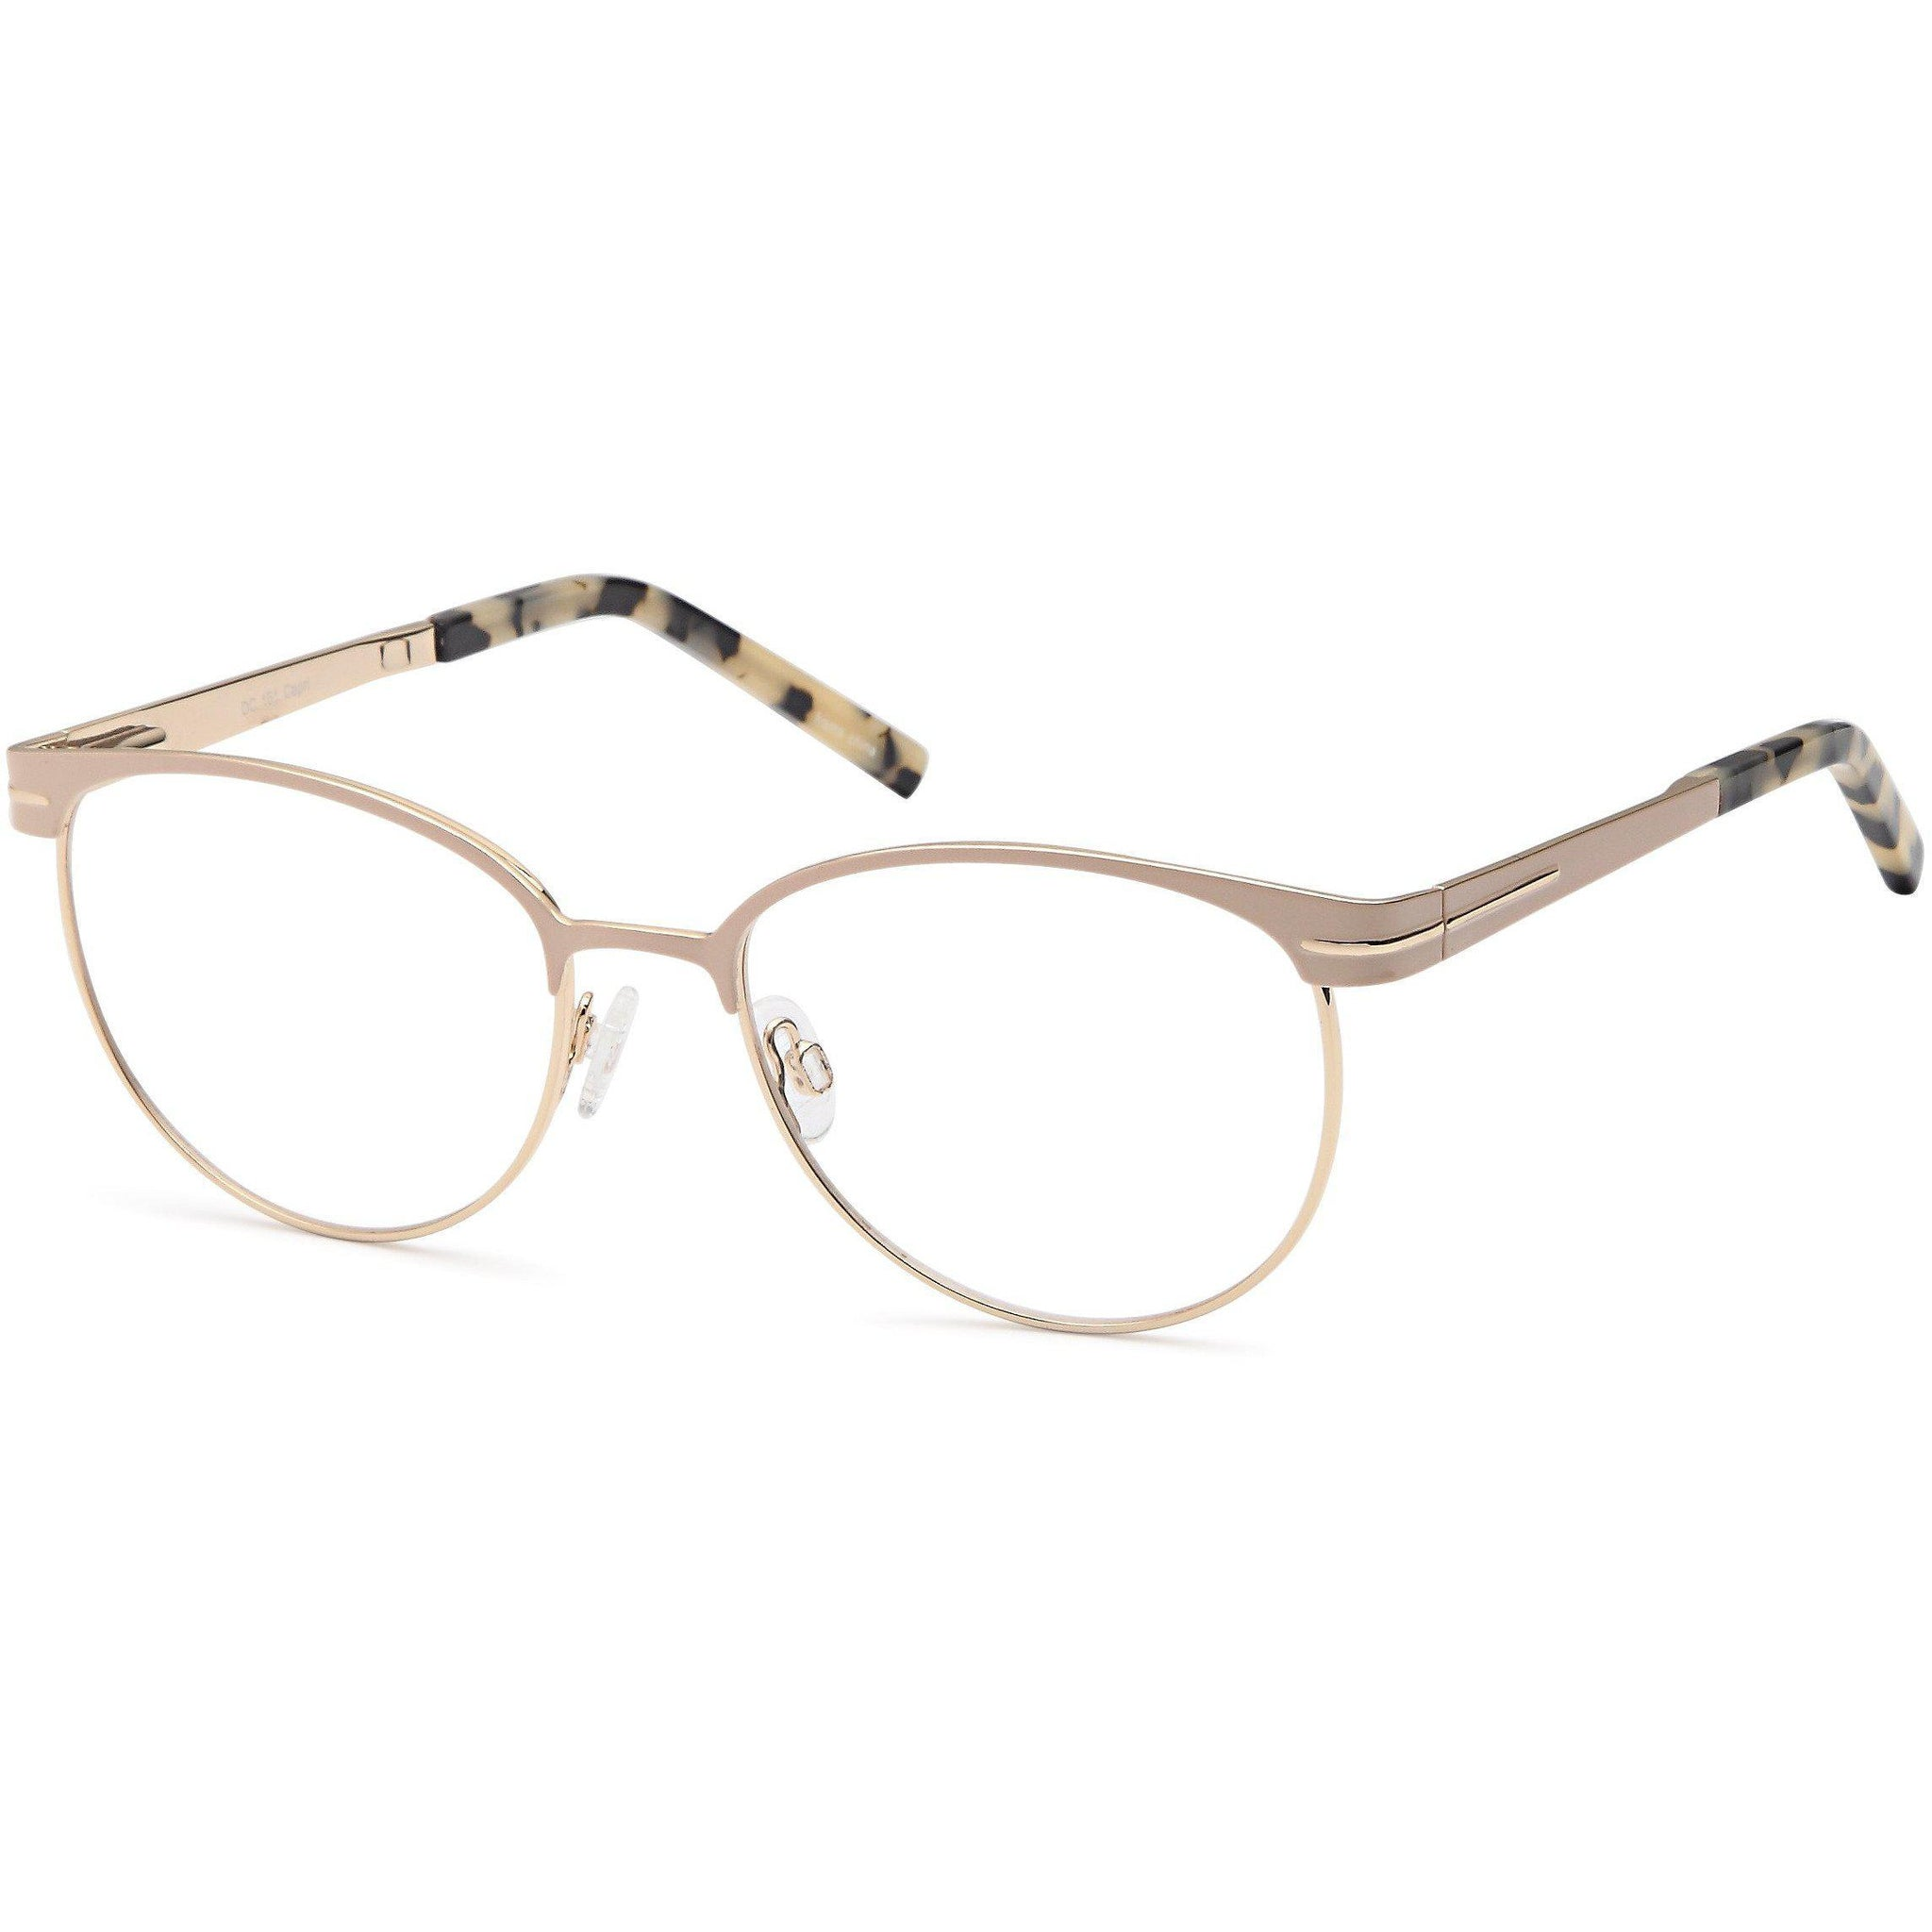 Di Caprio Prescription Glasses DC 161 Eyeglasses Frame - timetoshade